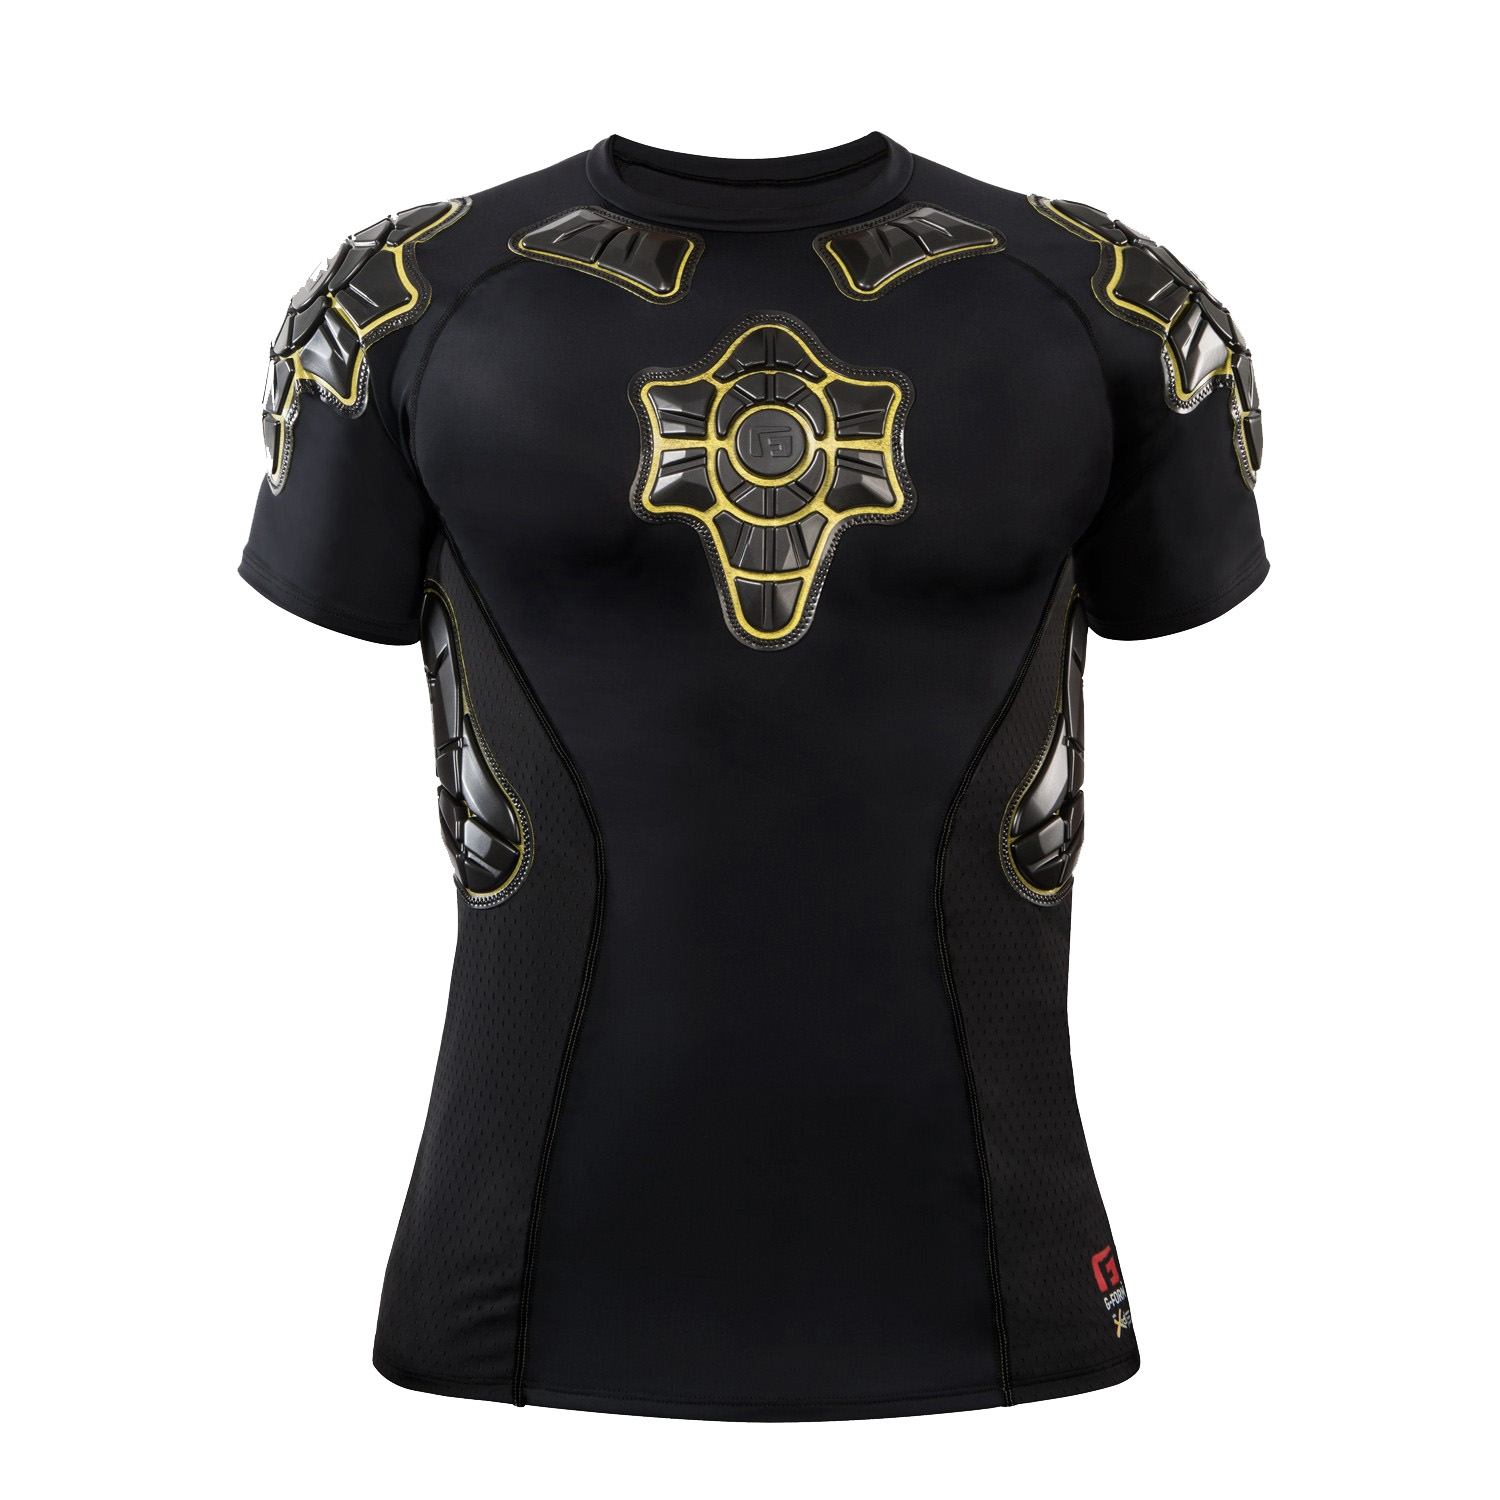 Tee-shirt de protection G-Form Pro-X Noir/Jaune - S